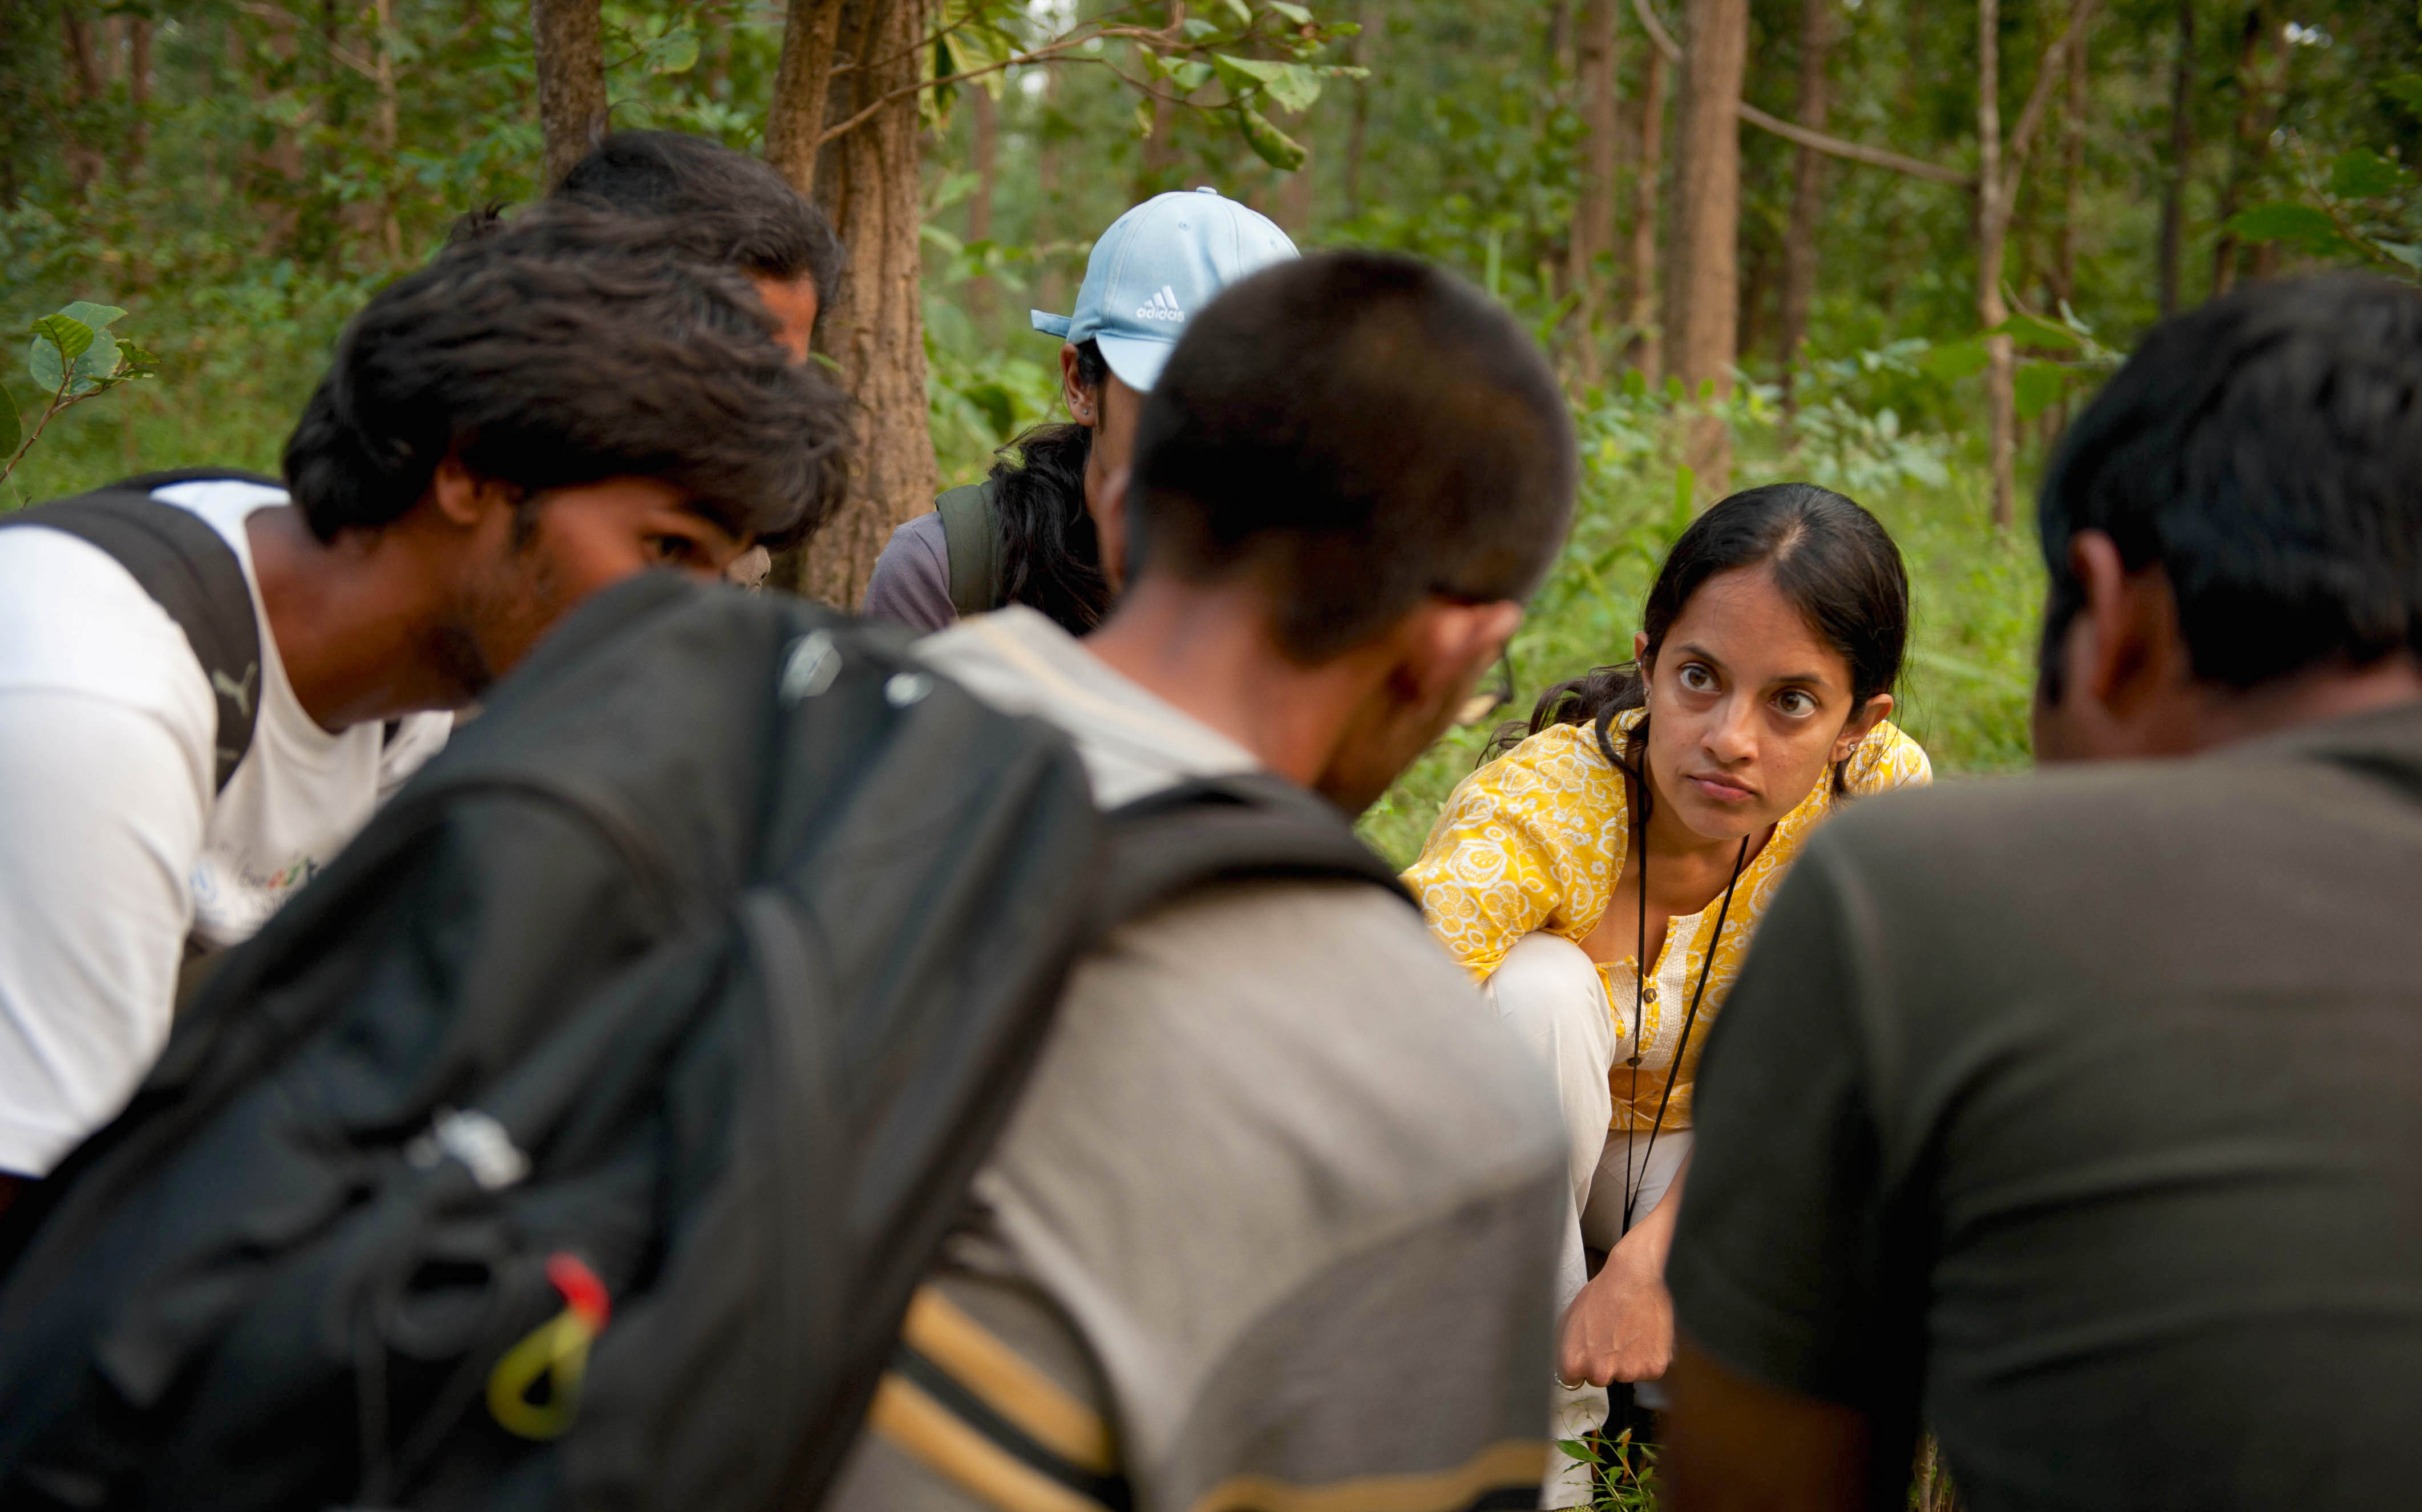 Krithi's work, trying to map human-animal conflict zones across India, started with a single project outside Kanha National Park. Photo: Kalyan Varma  Cover photo: After years of research work conservation scientist Krithi Karanth wanted to see a direct impact on the ground. She started Wild Seve to help people who incurred financial  losses due to human-wildlife conflict receive quick compensation.  Cover photo: Shekar Dattatri